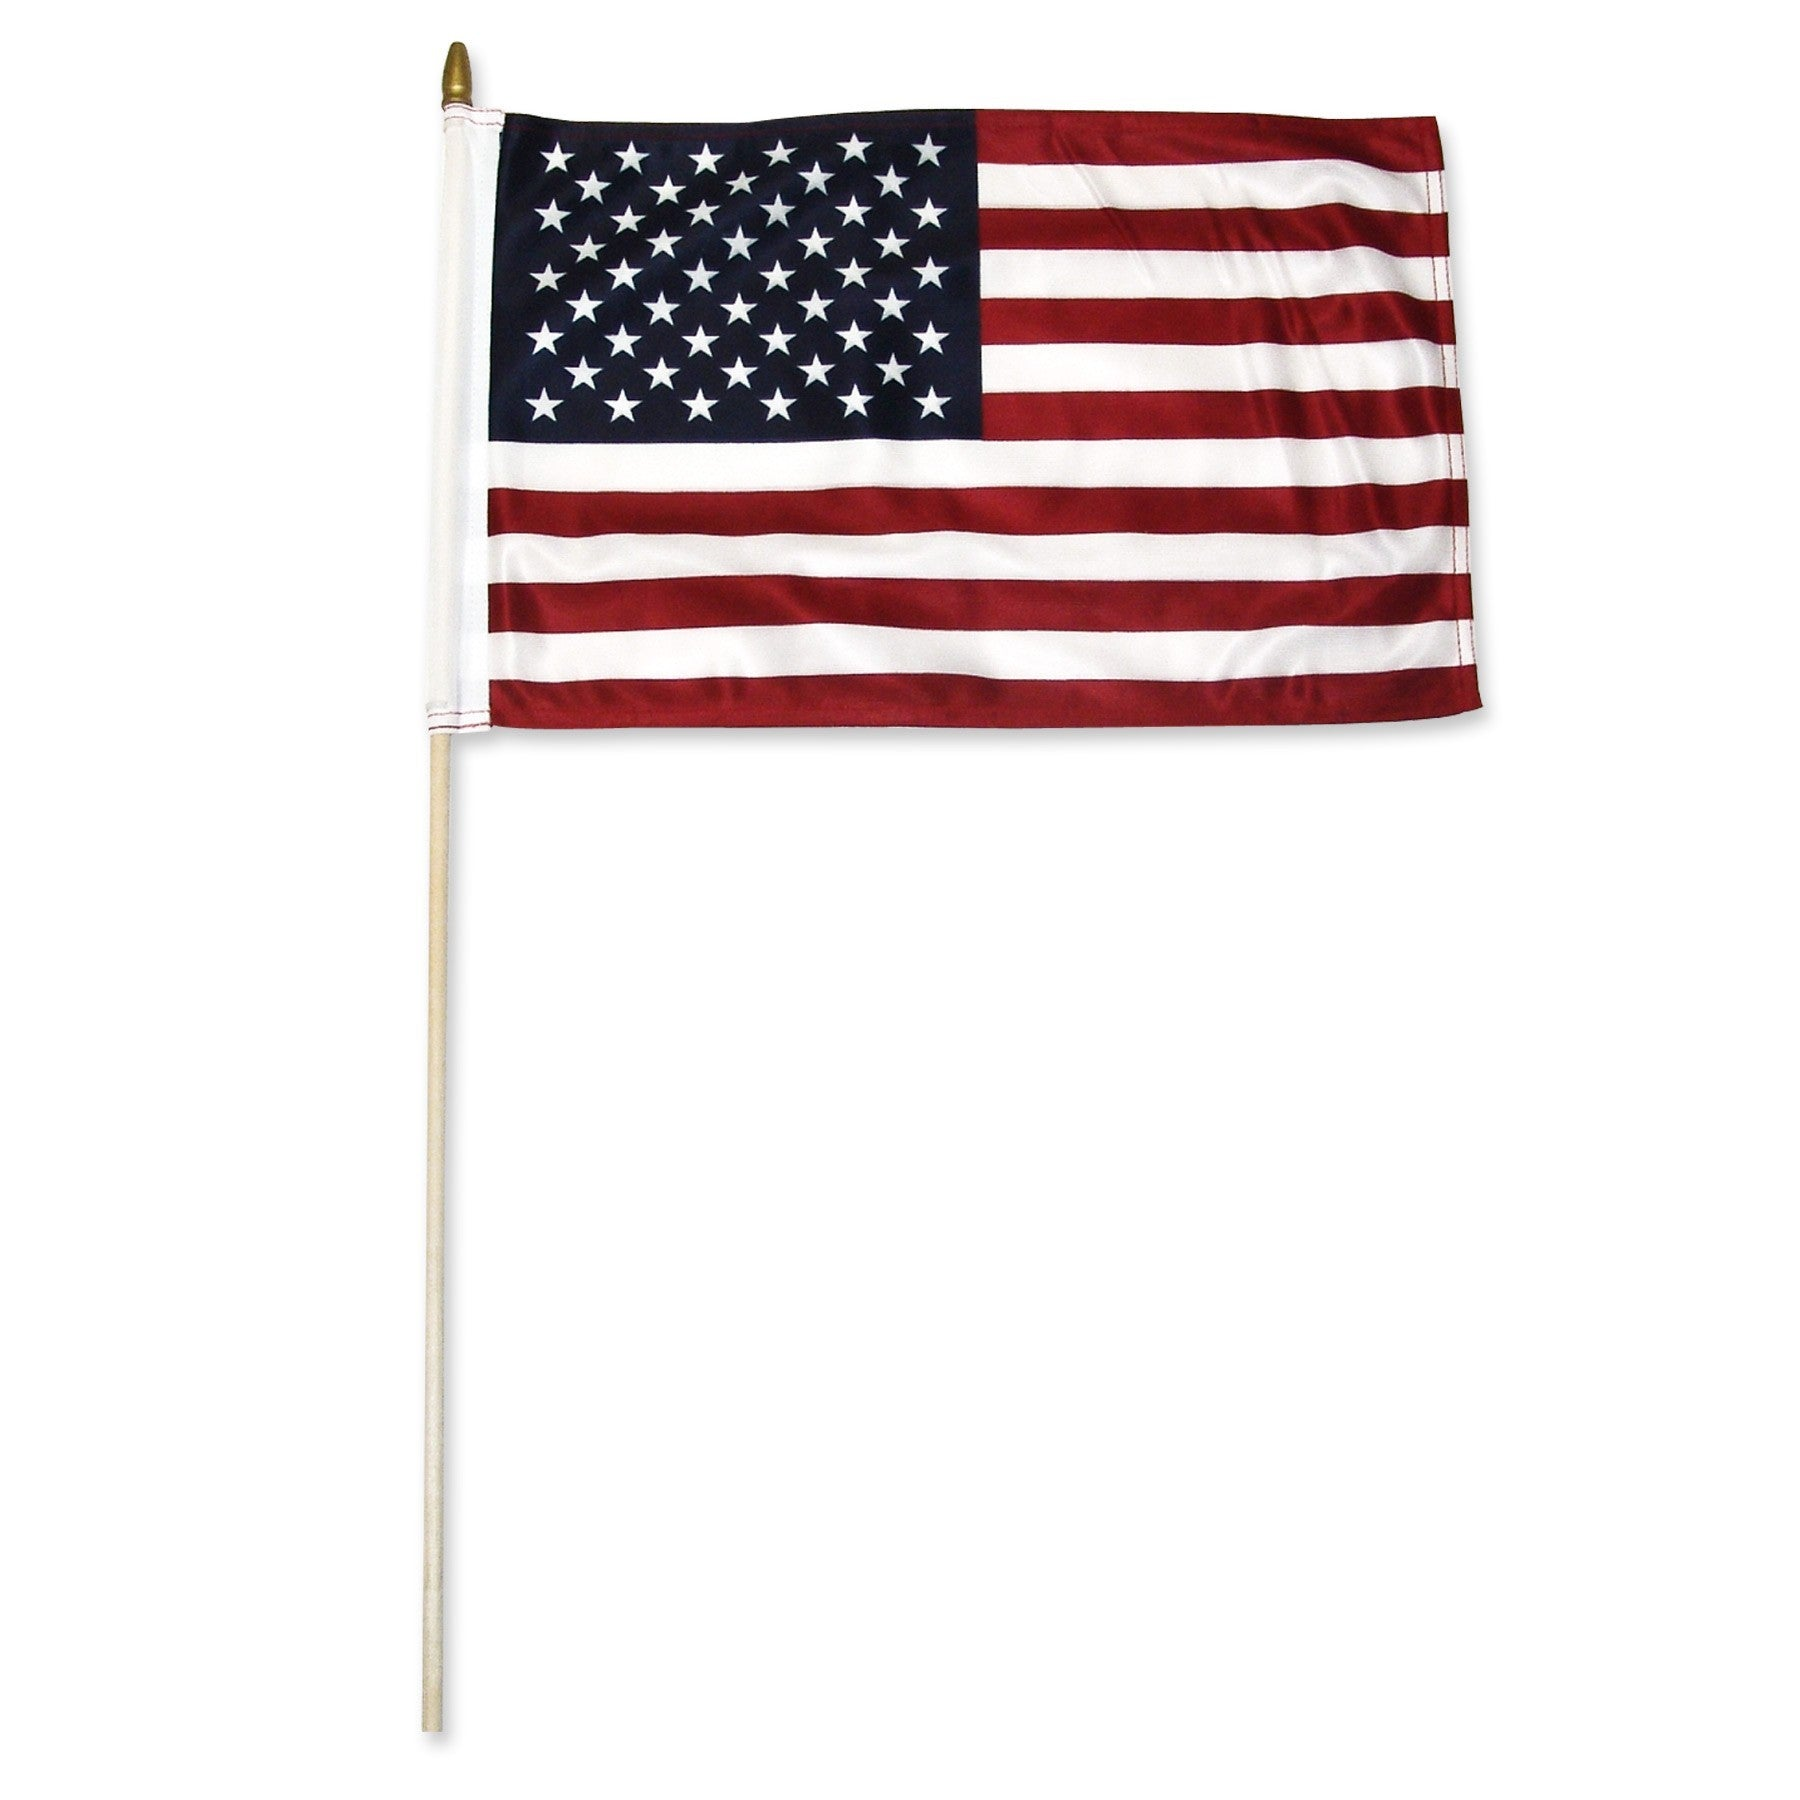 US flags for sale and banner stands